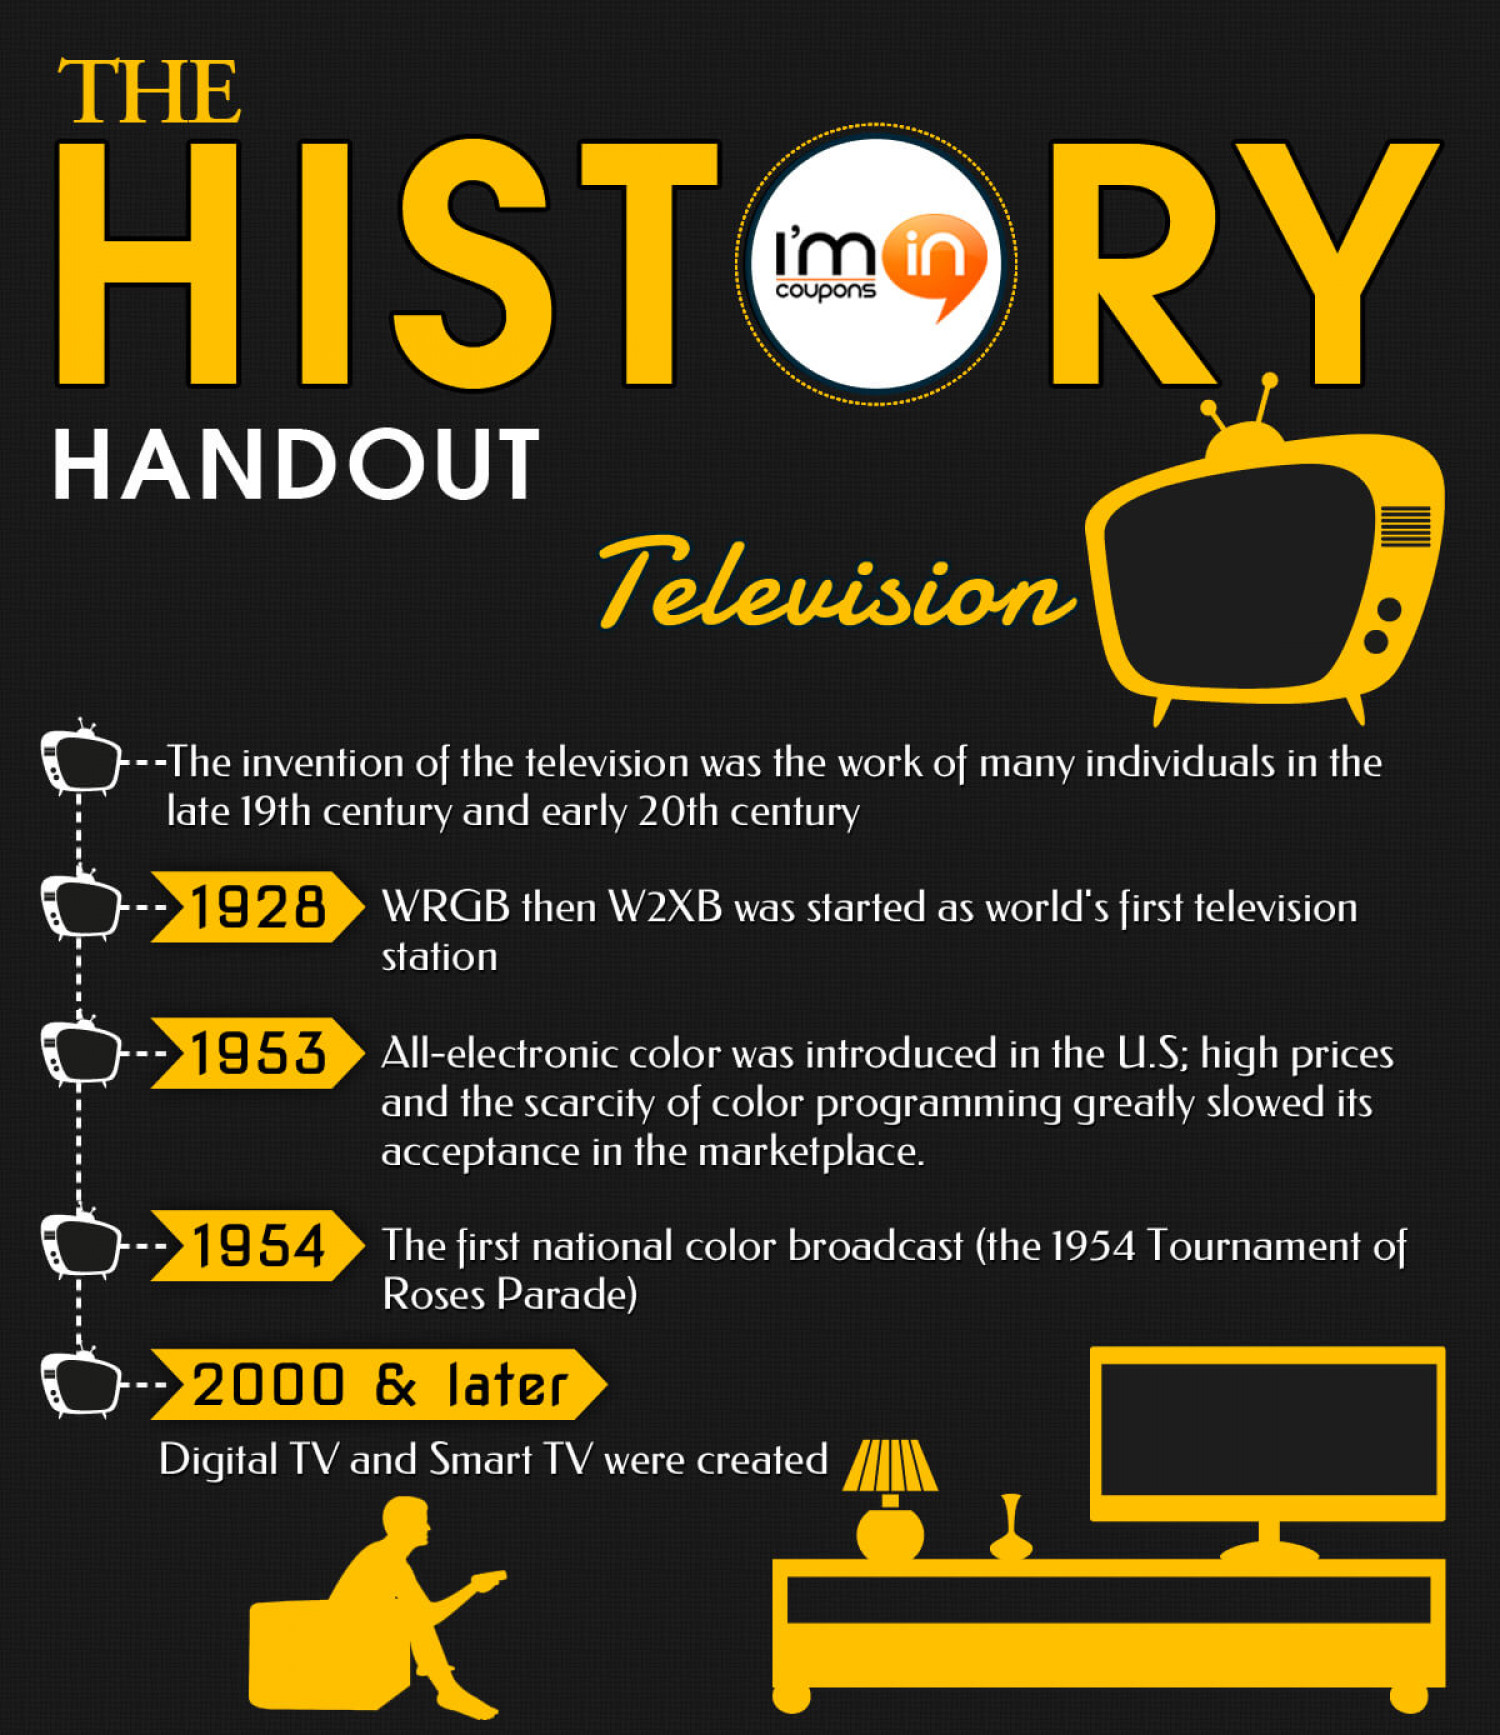 The History Handout - Television Infographic